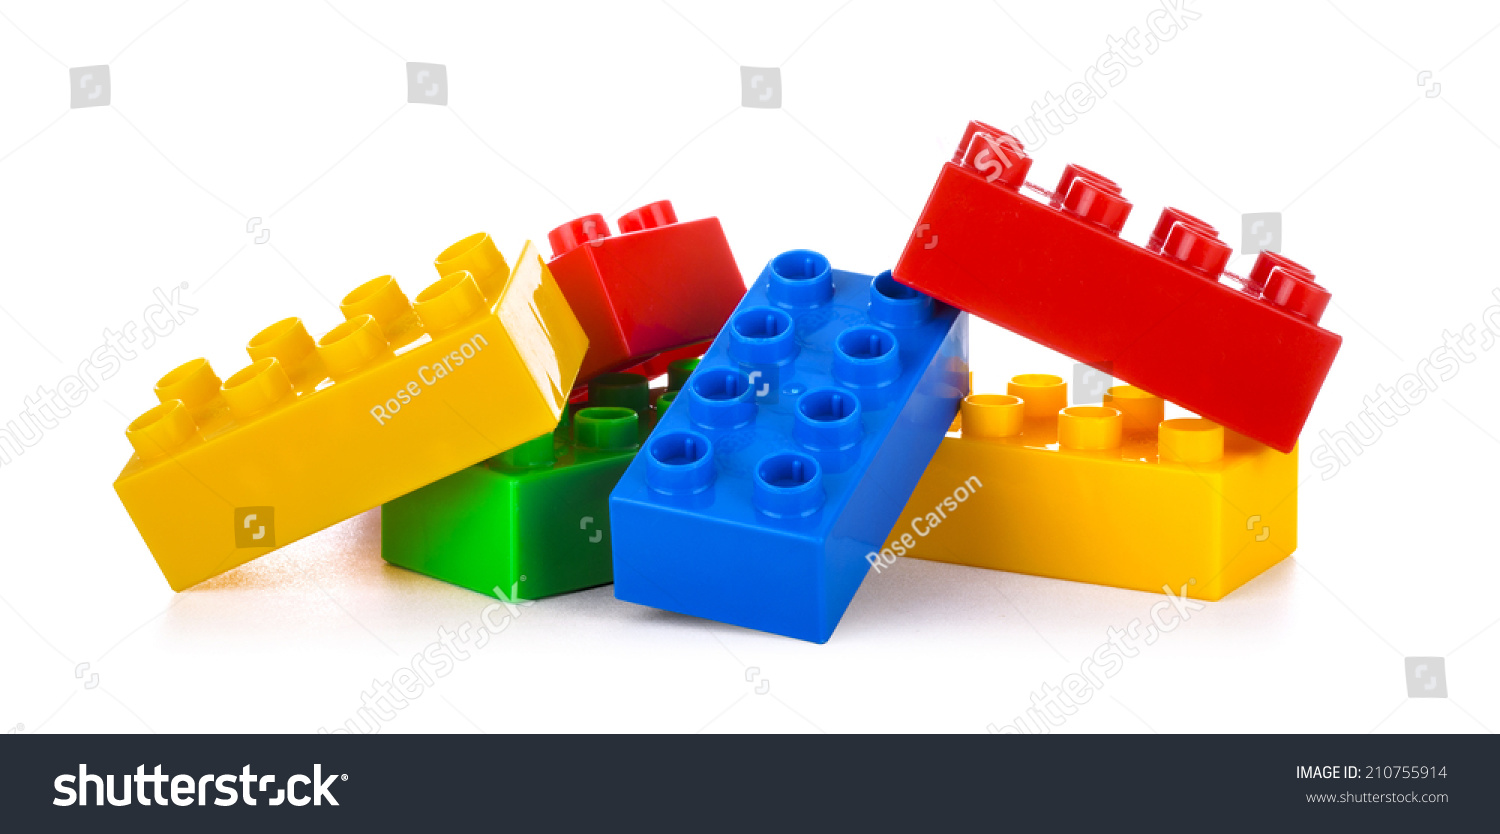 Plastic building blocks isolated on white stock photo for Plastic building blocks home construction